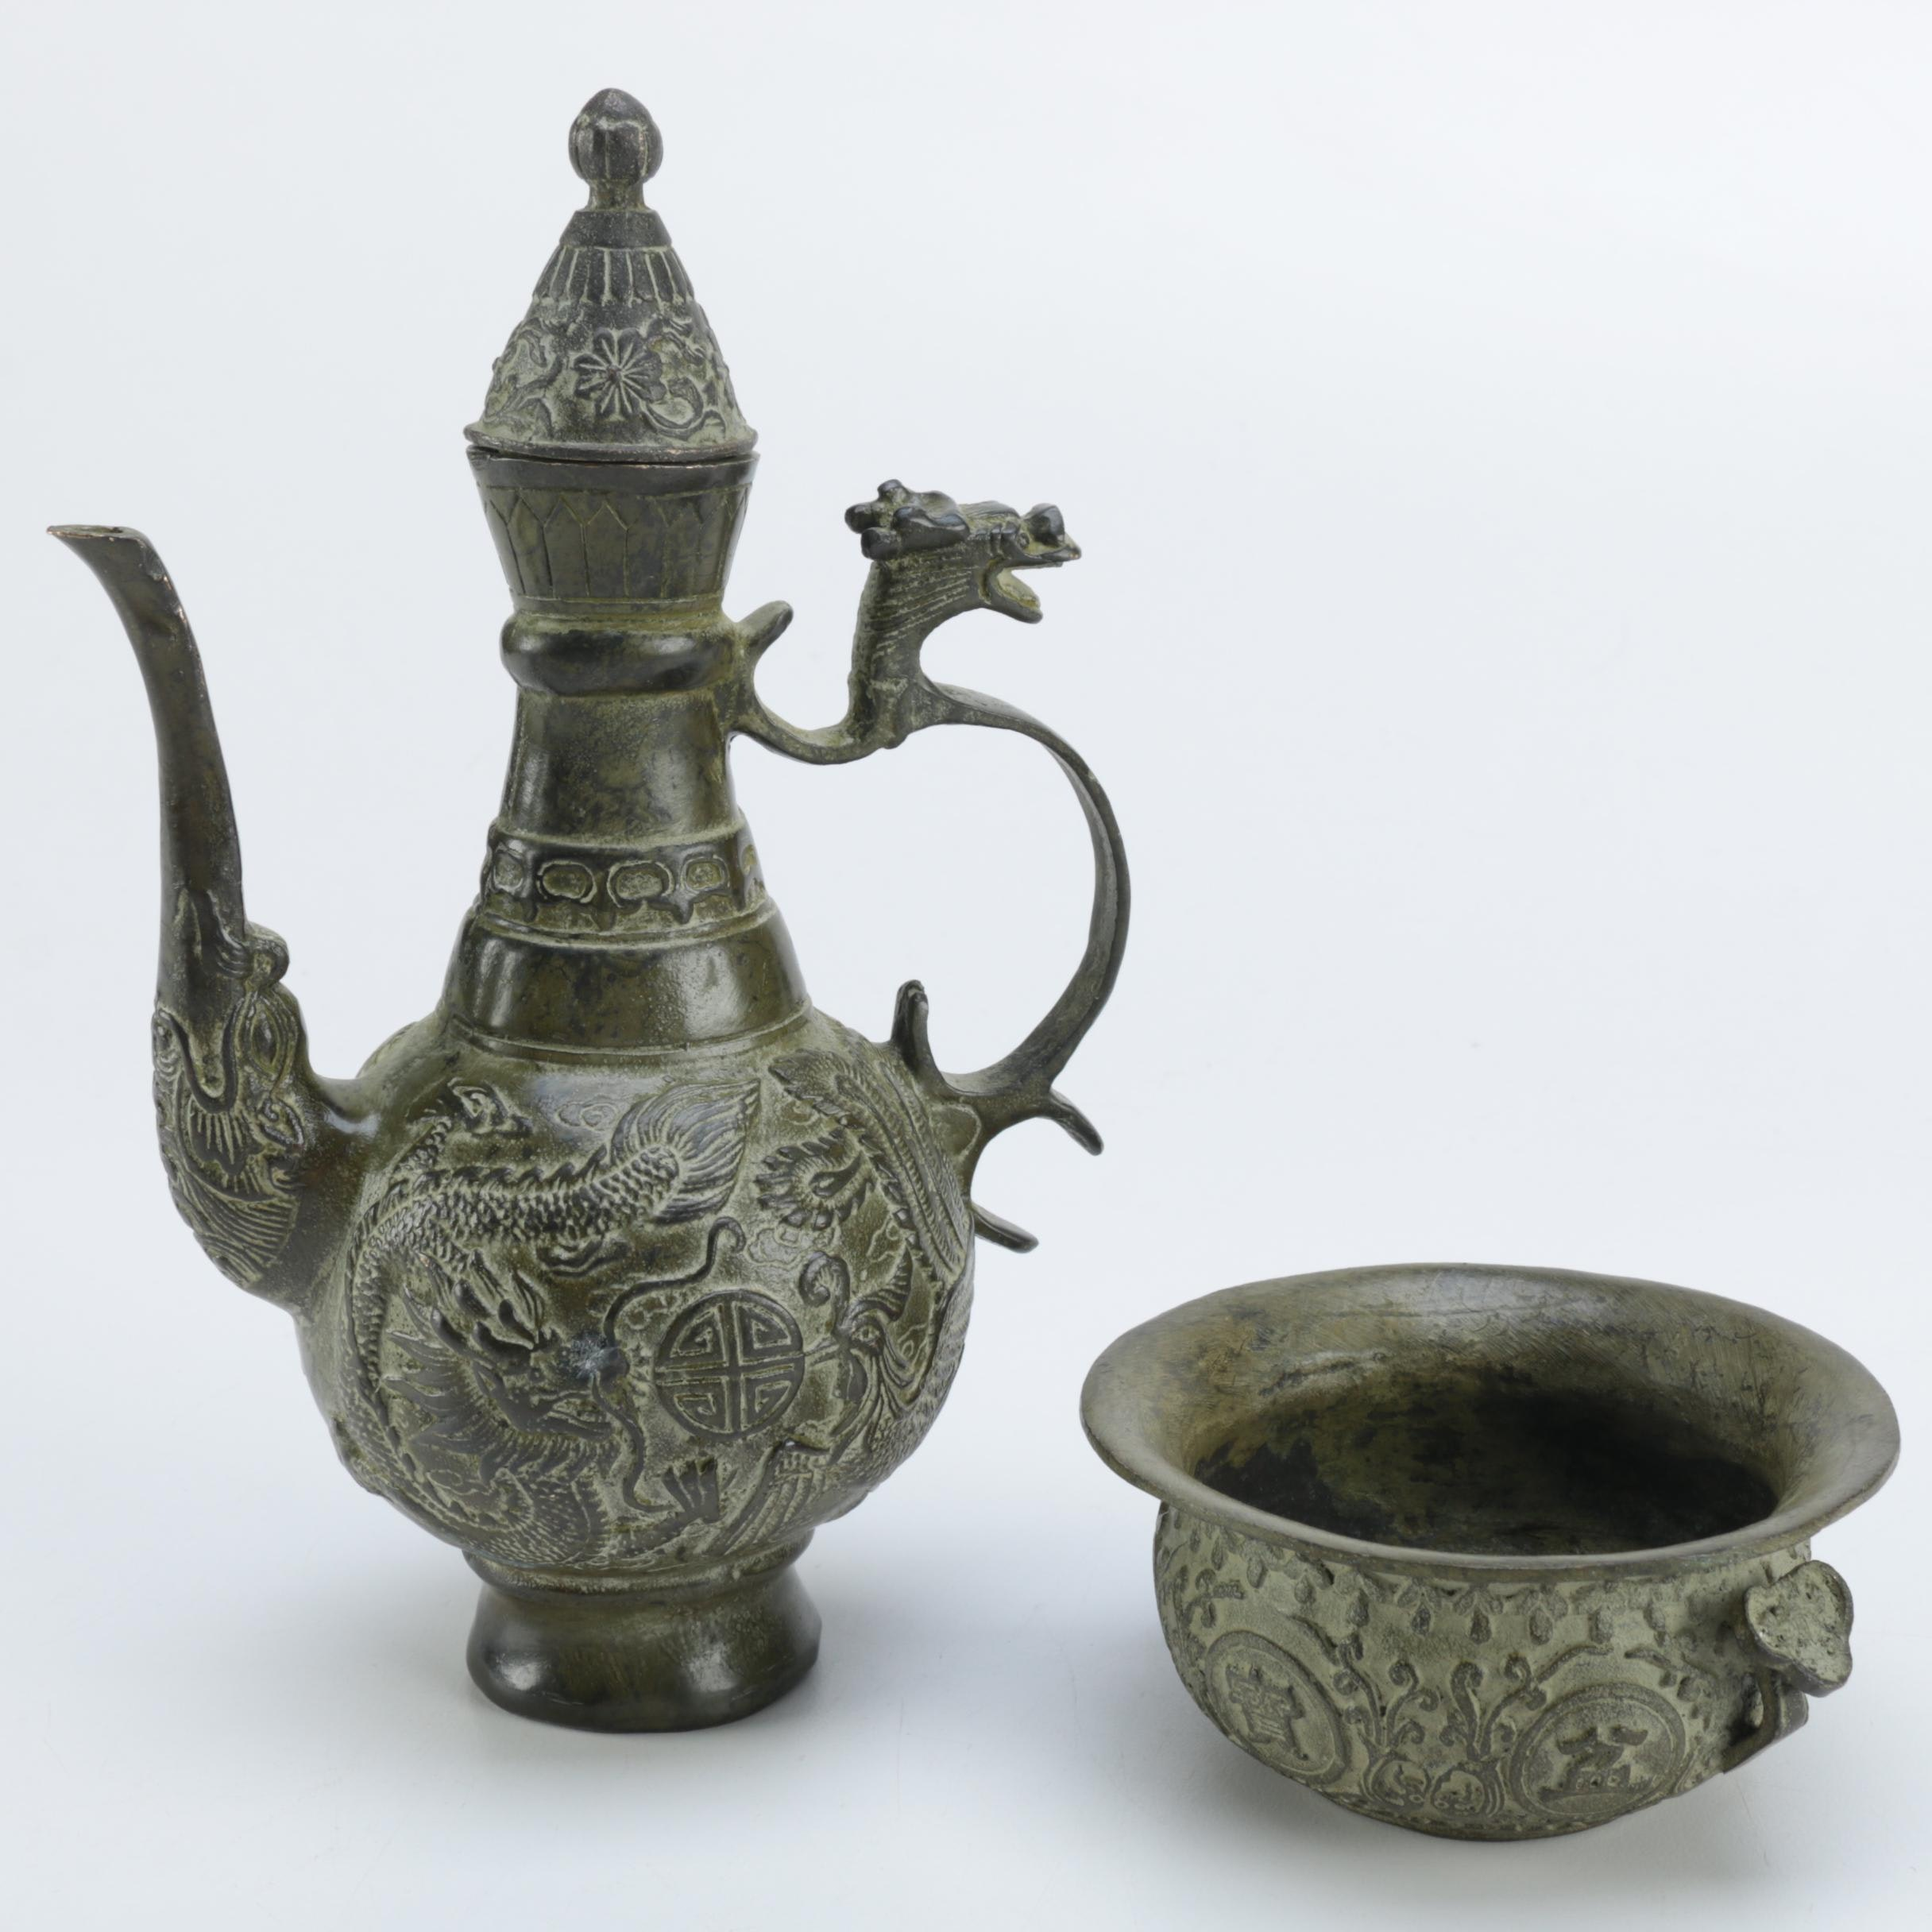 Chinese Teapot with Dragon Motif and Brass Bowl